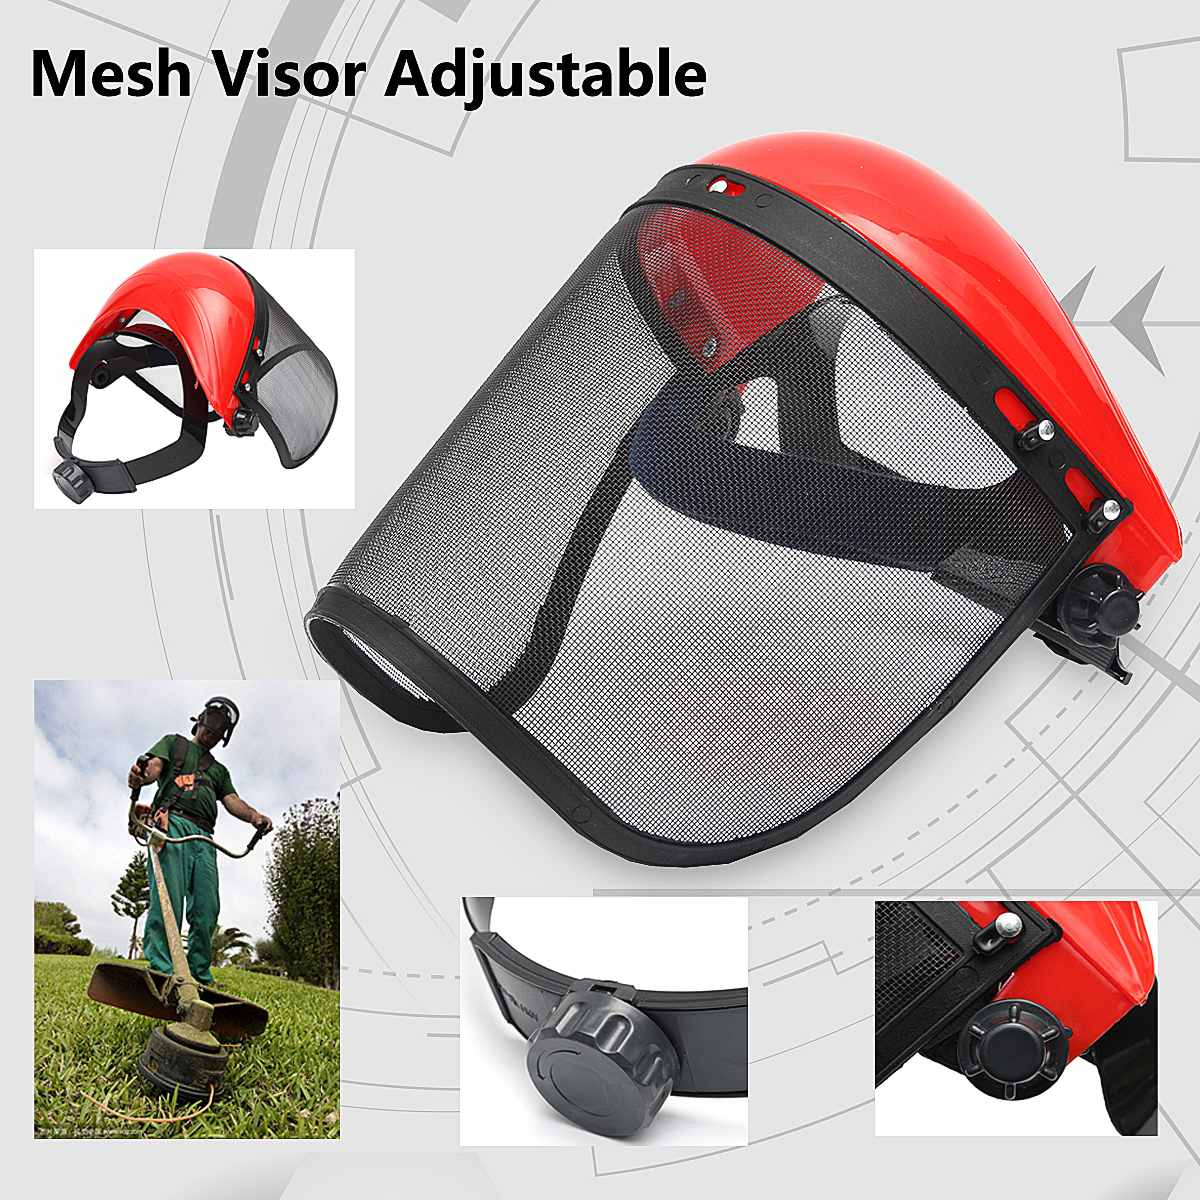 1Pcs New Faces Mask Industrial Work Protective Mesh Screen Faces Shield Clear Safety Workwear Mask Eye Protection Flip Up Visor